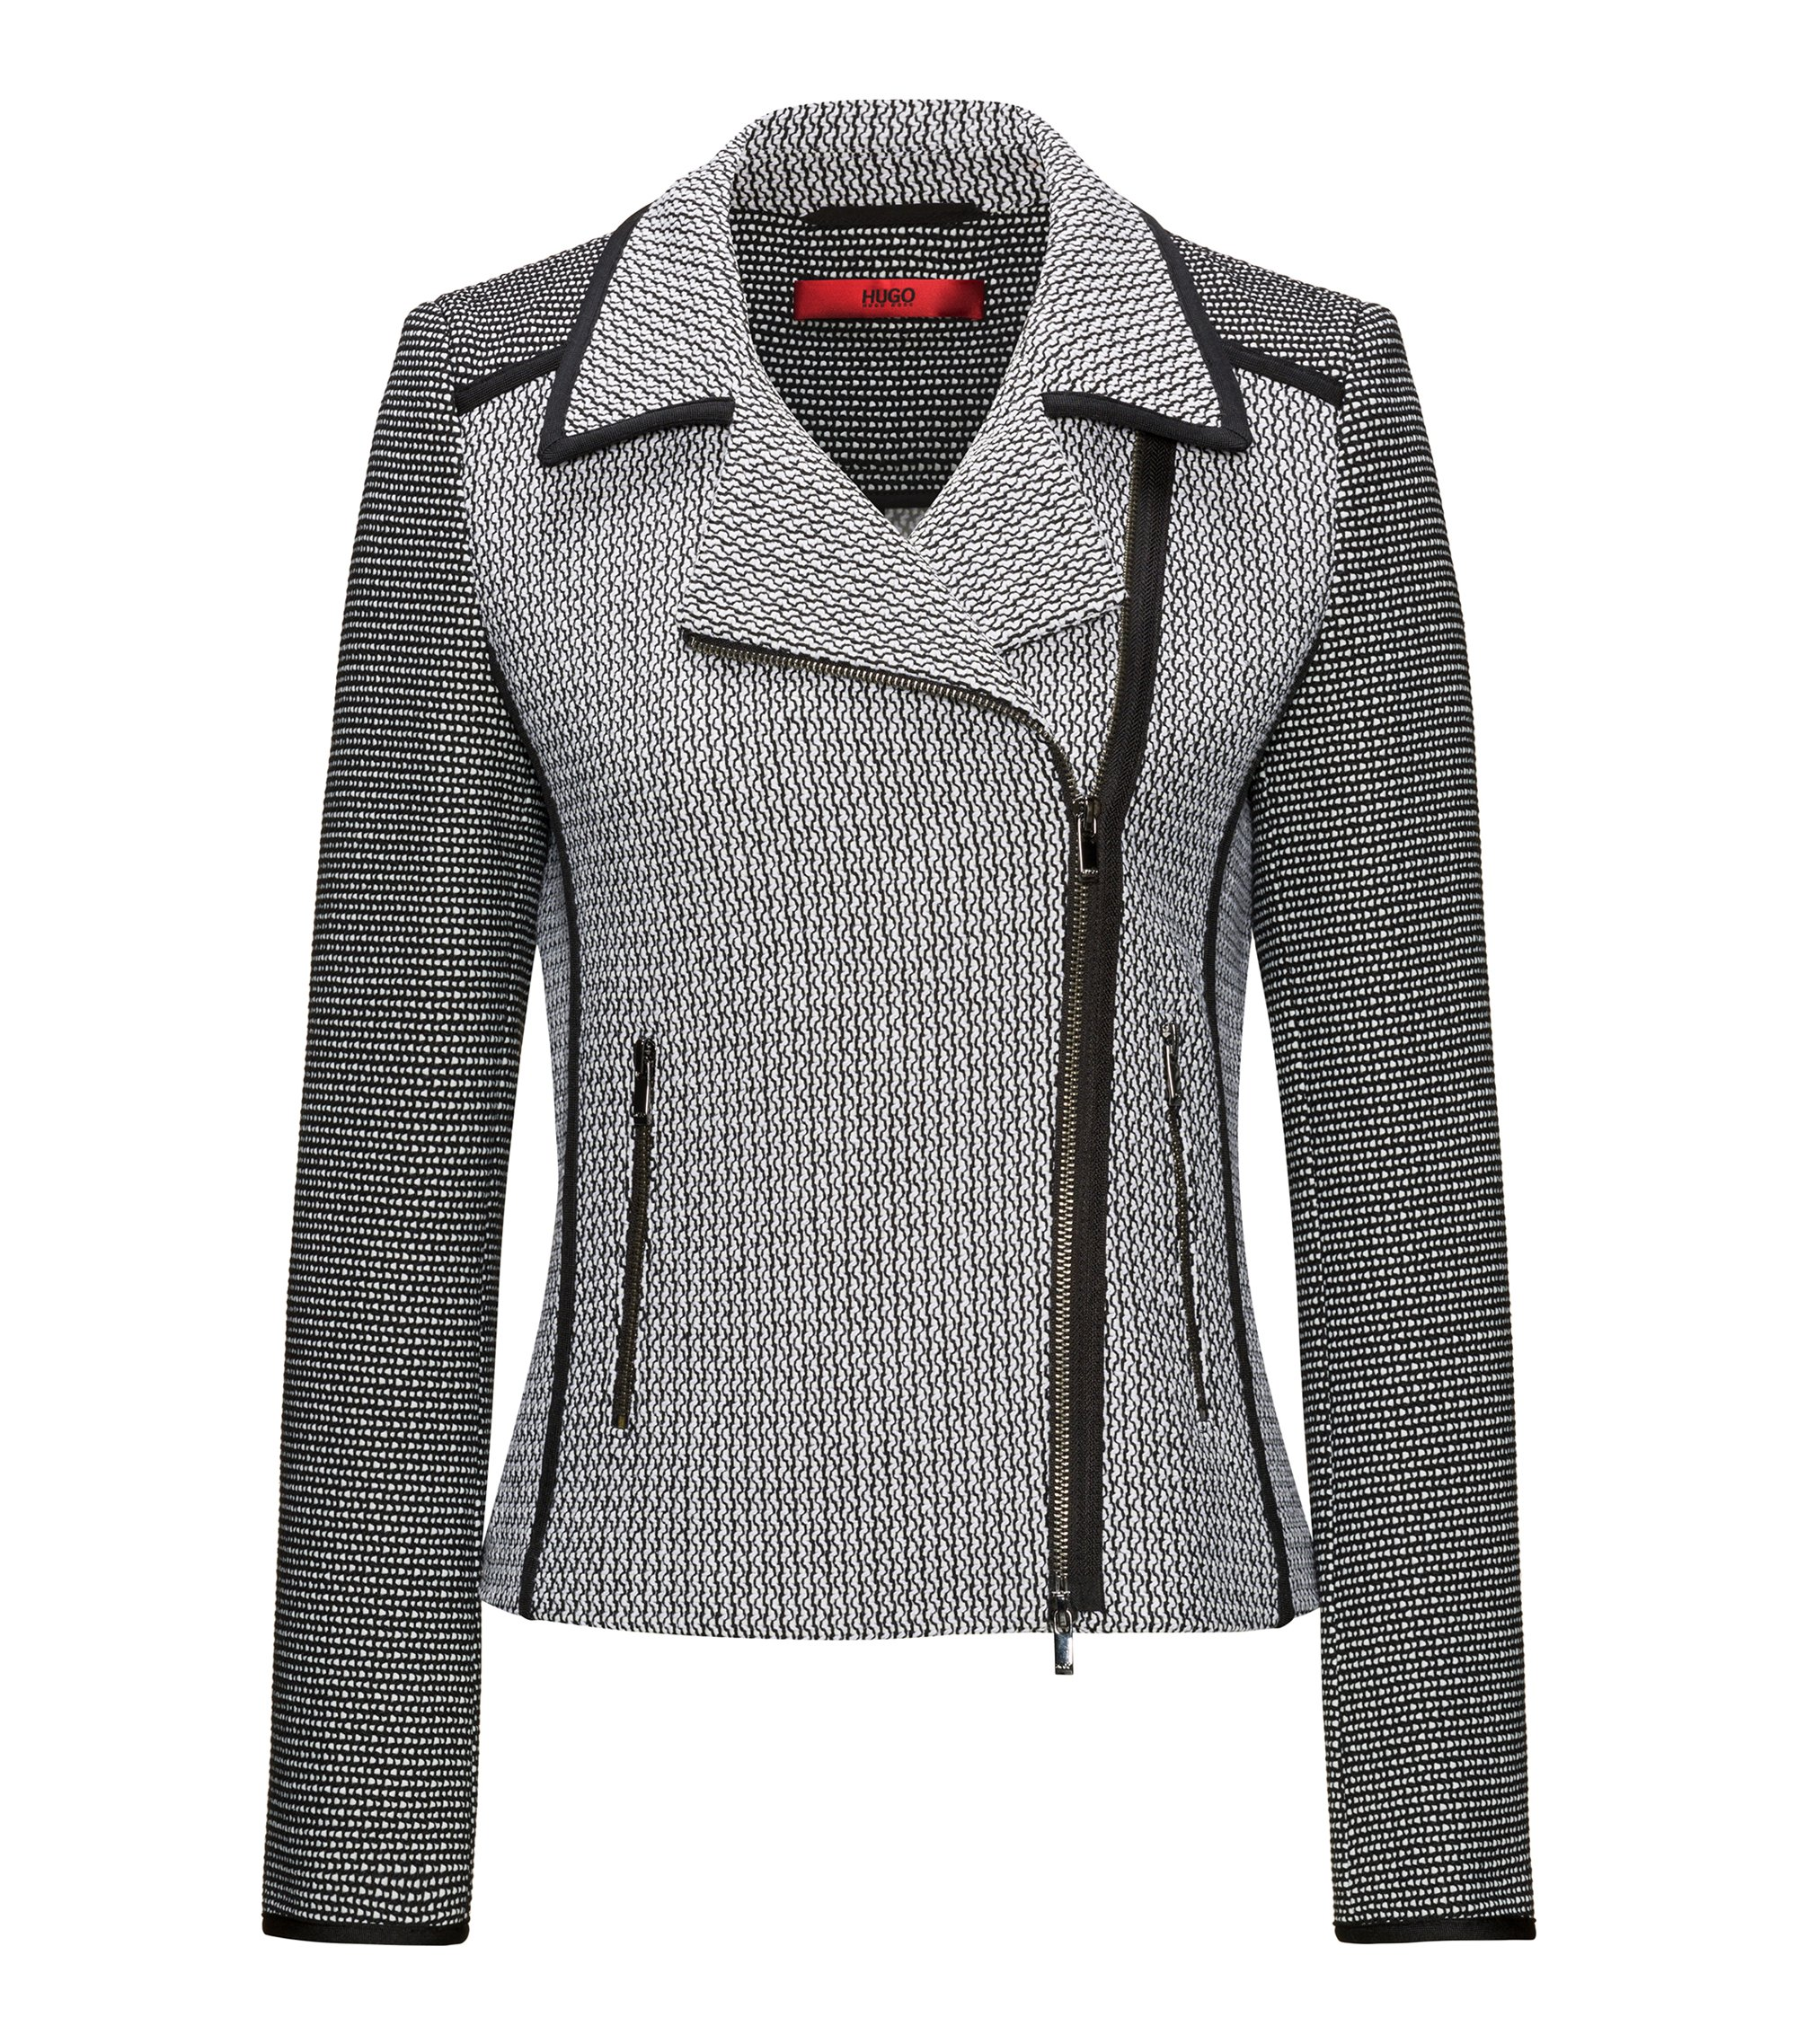 Patched tweed biker jacket with contrast piping, Patterned